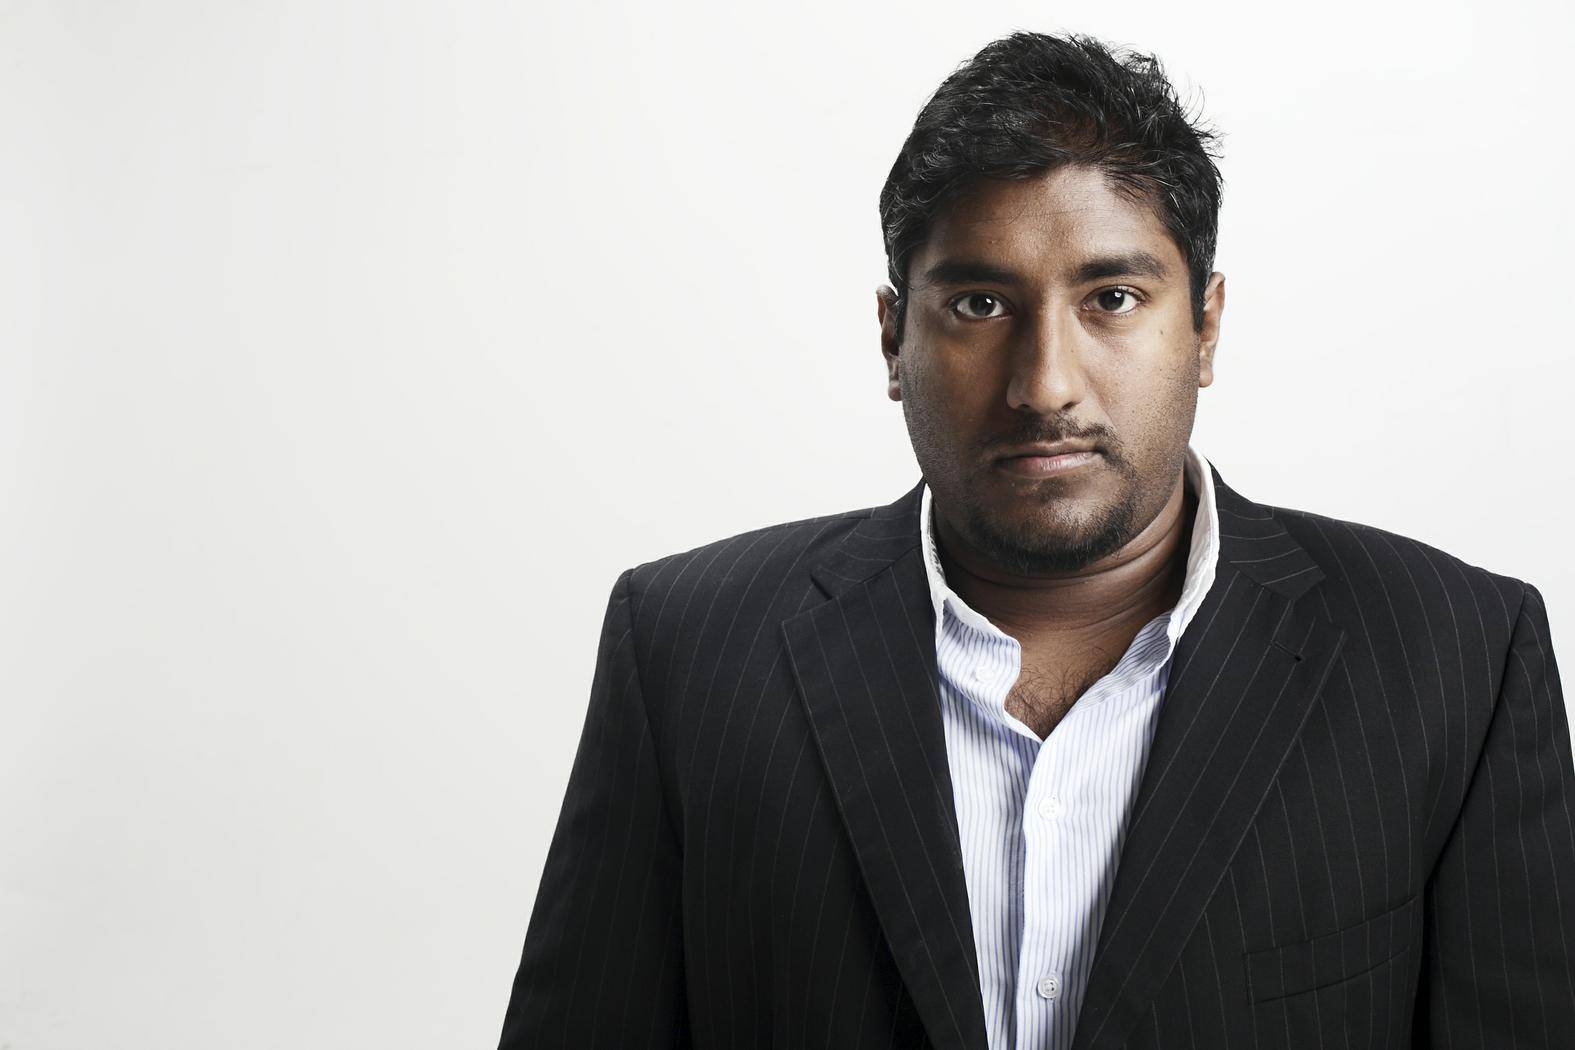 Gyft's Vinny Lingham: Growth of New Bitcoin Users Has Slowed